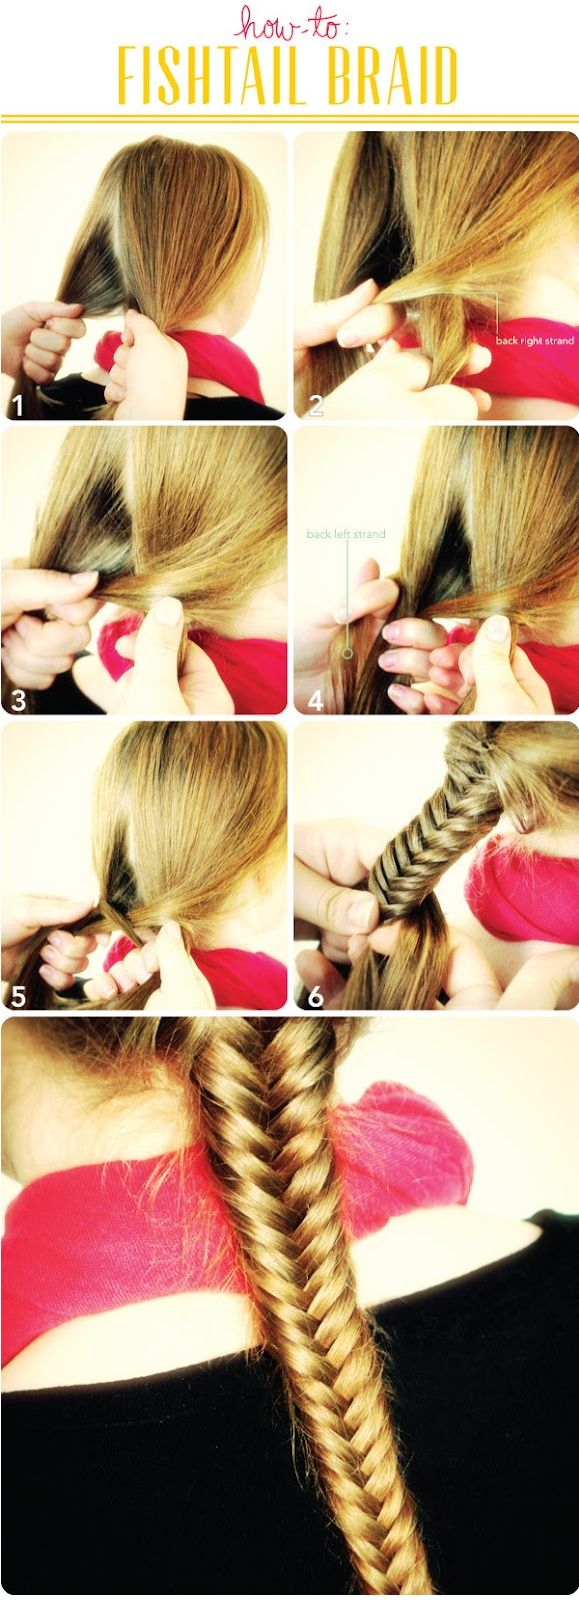 25 Totally Pretty Holiday Hairstyles For Little Girls Fishtail Braid  Tutorialshow